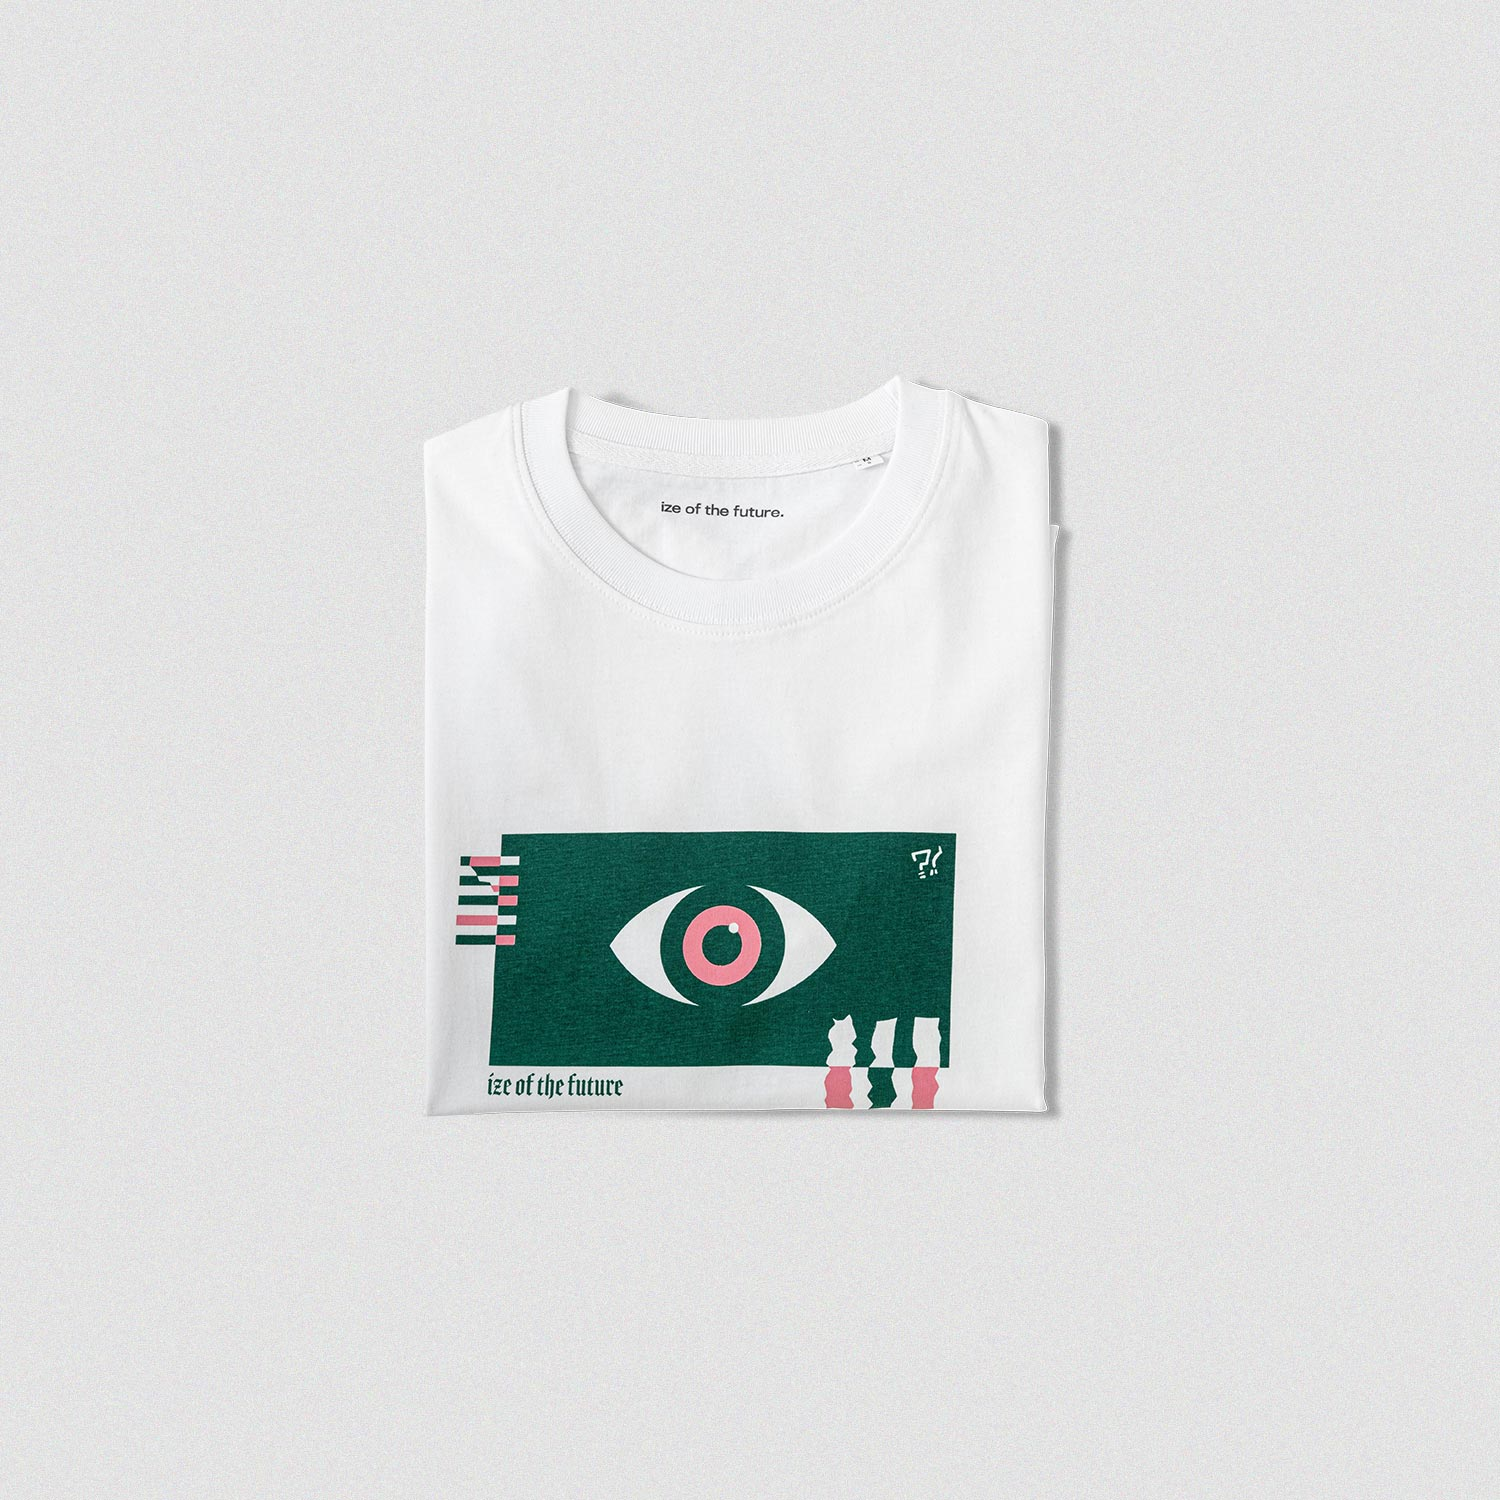 White t-shirt with green and pink graphic, folded up